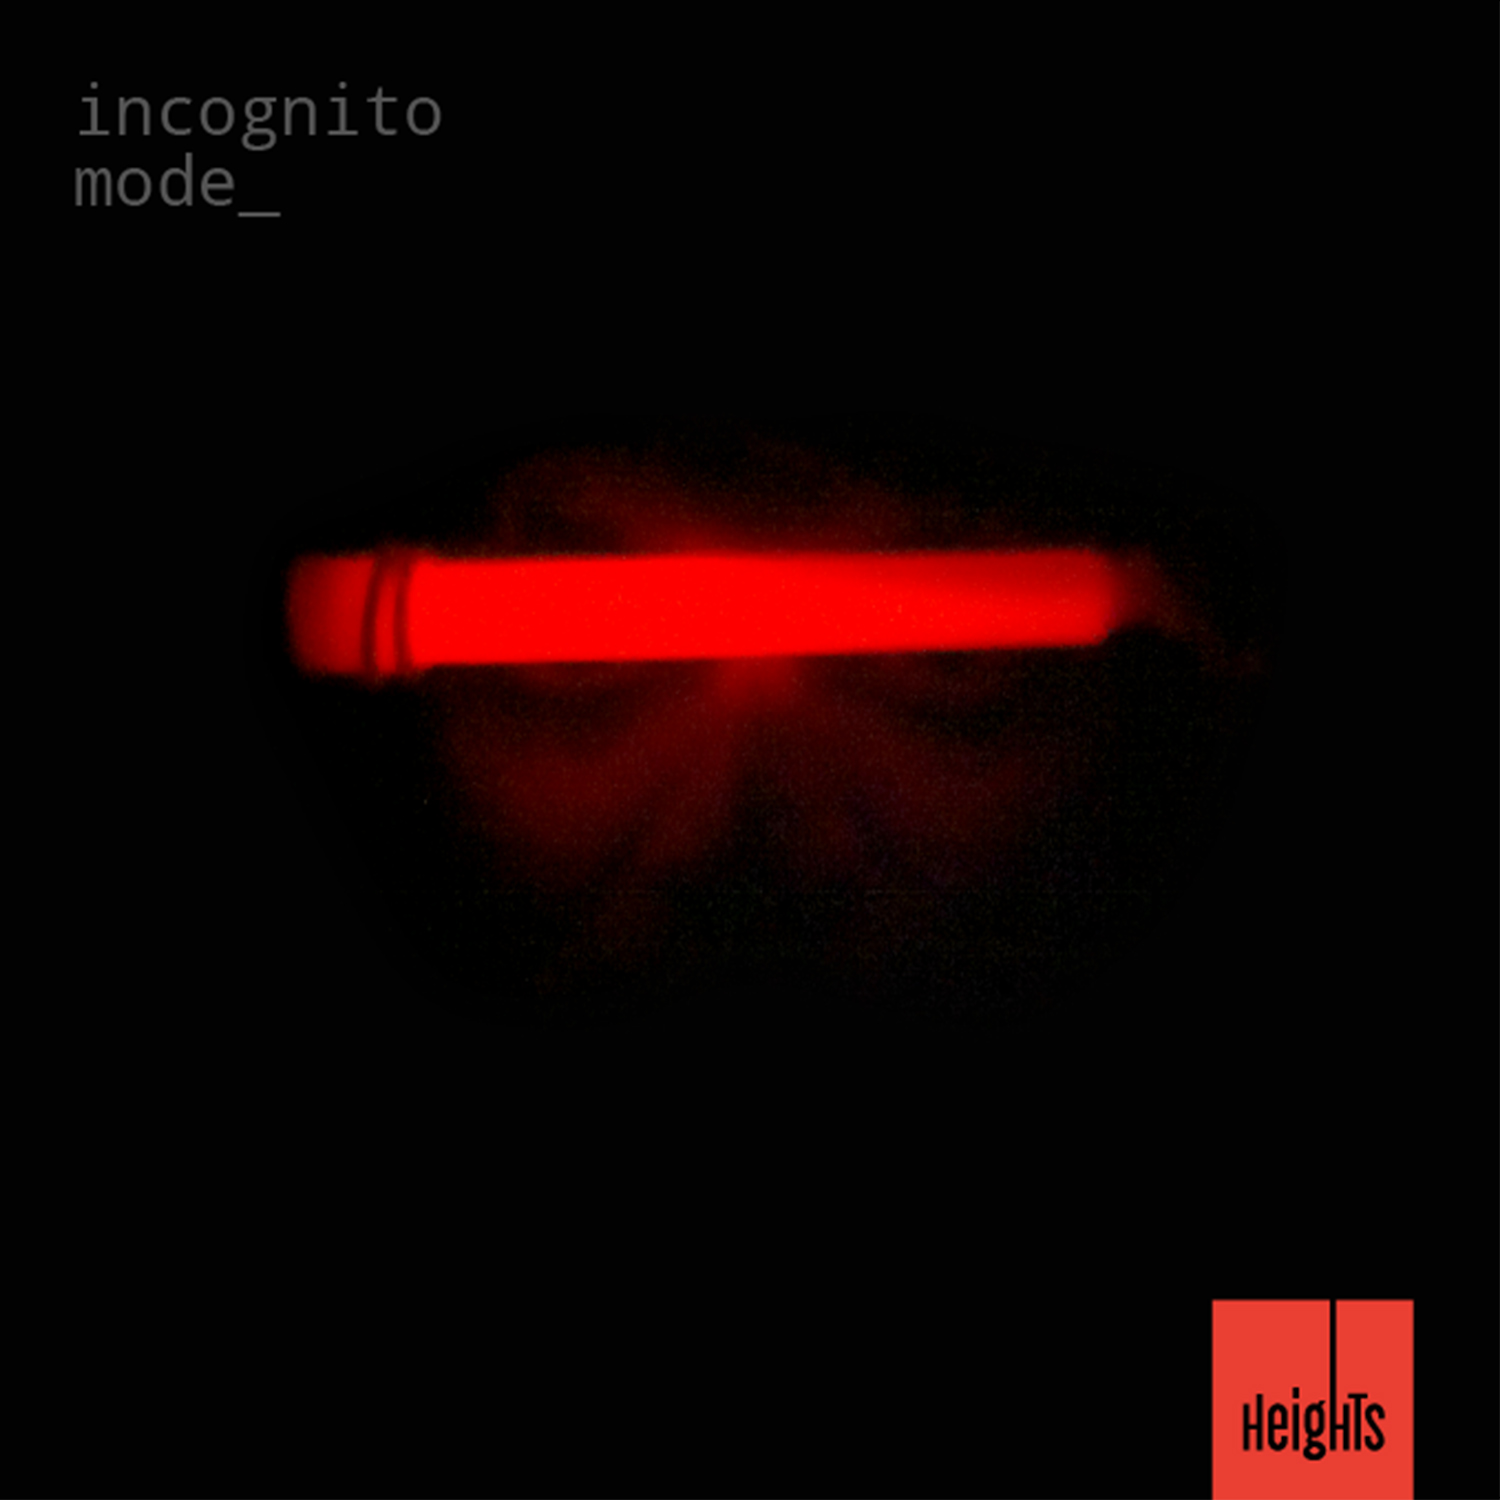 Stream the Incognito Mode Album